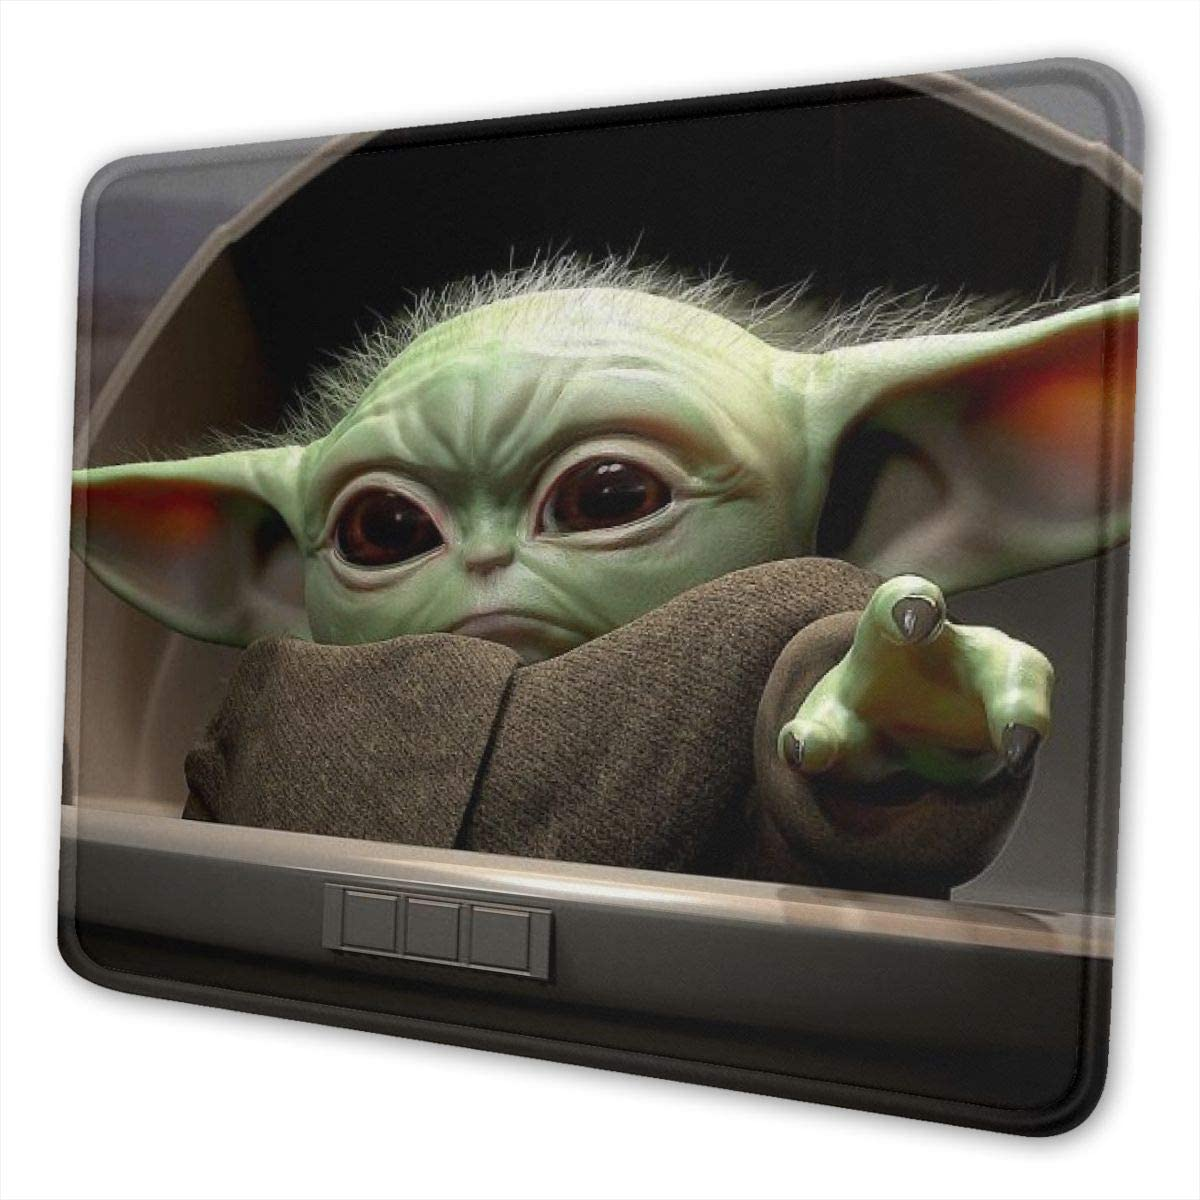 Gaming Laptop BAB-y Yod-a Mouse Pad with Non-Slip Rubber Base Thick Mouse Pad for Computers Office /& Home,Black,10 X 12 Inch